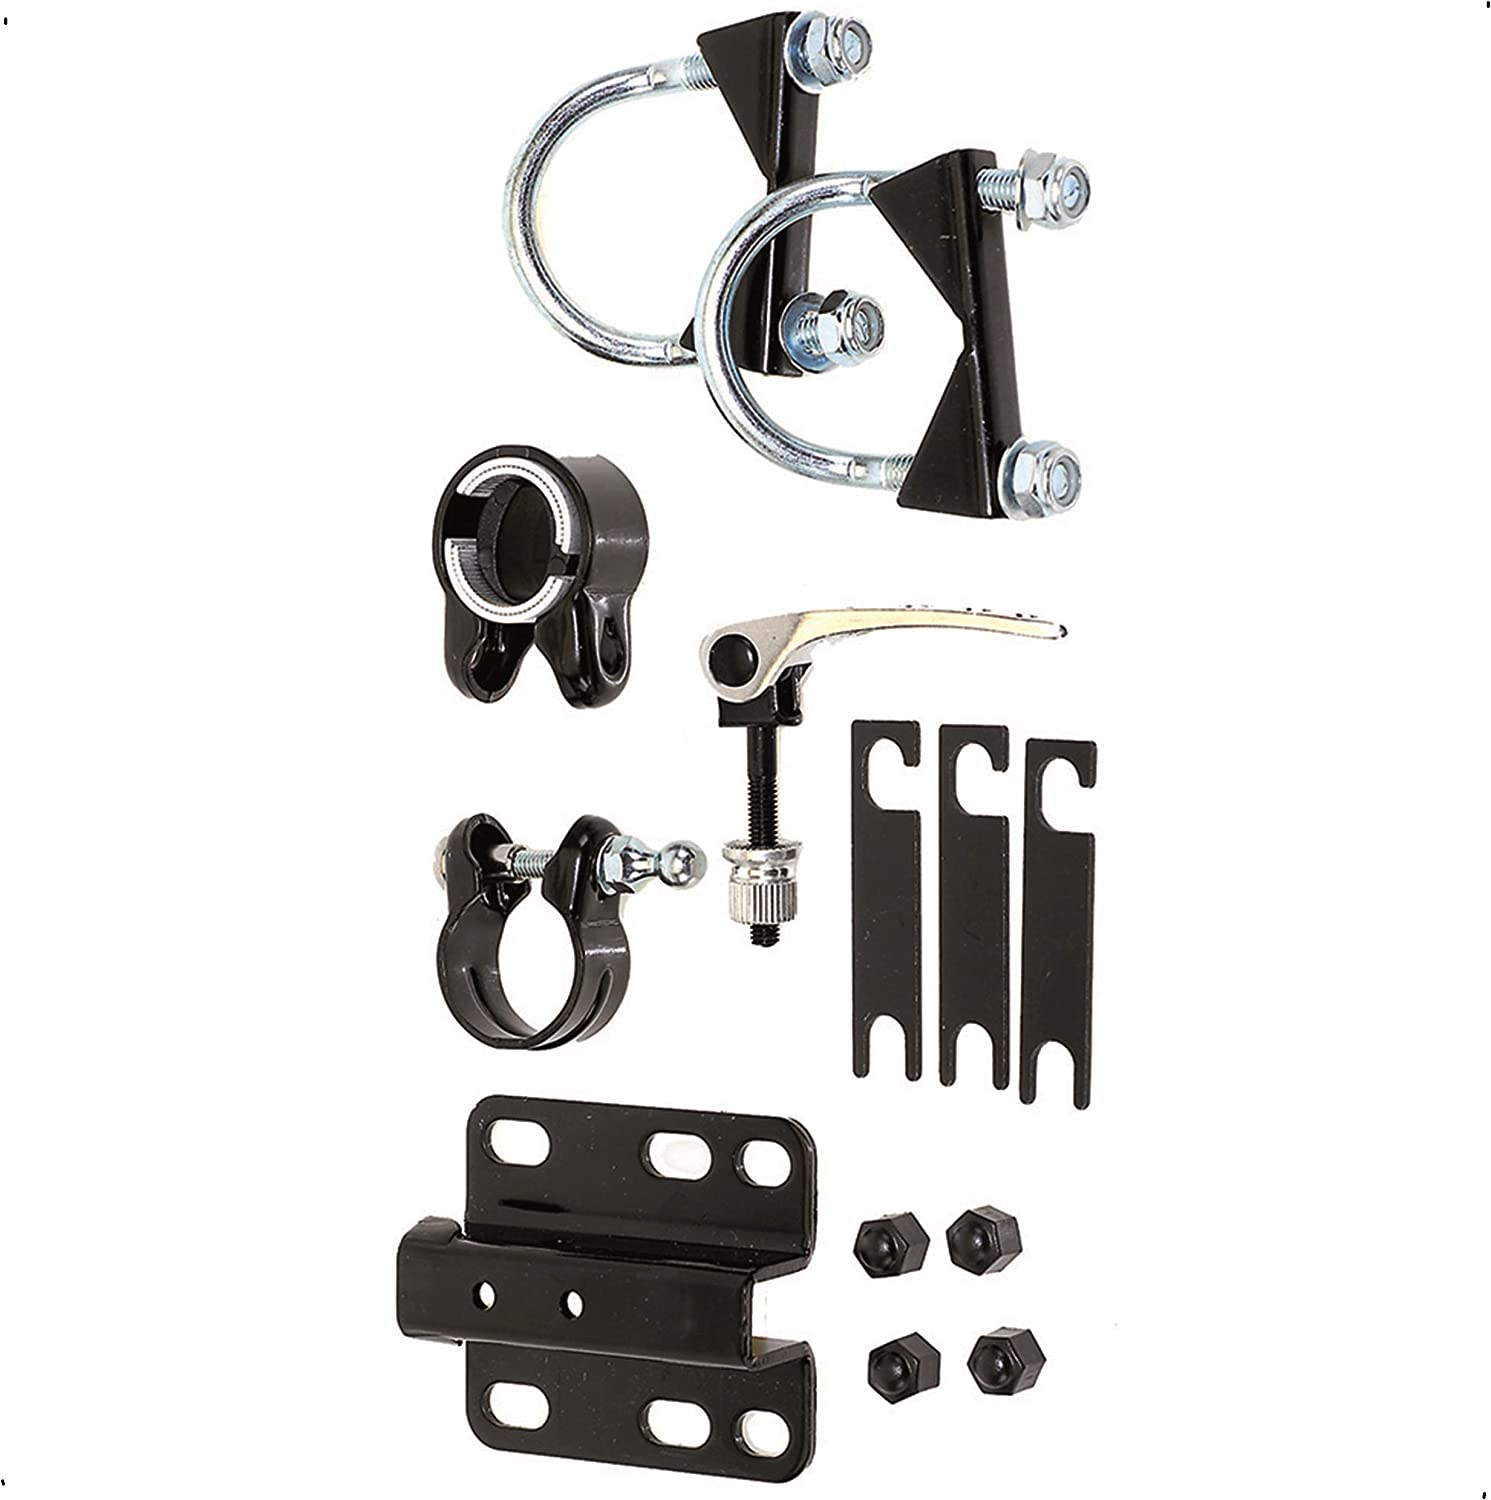 Trail Gator Tow bar and Accessories